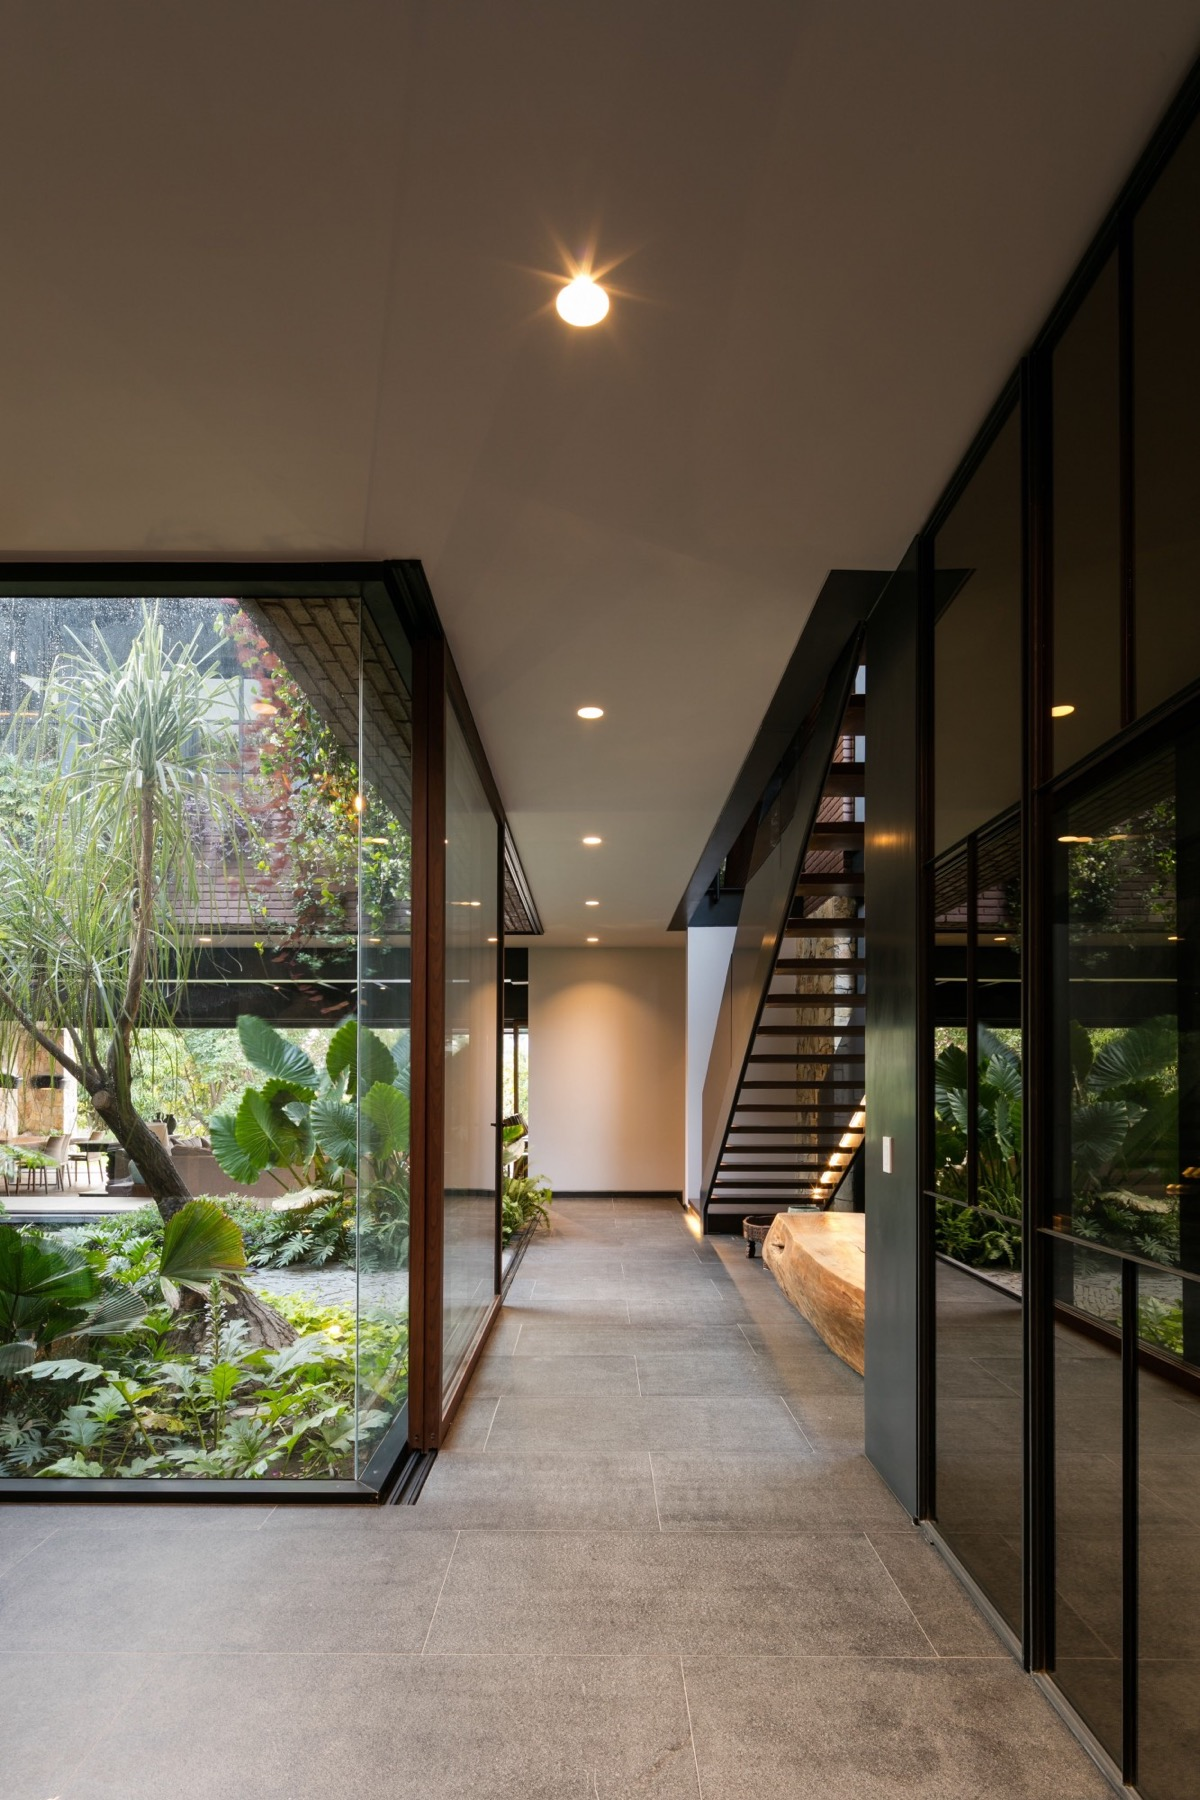 Modern Mexican Build With Tropical Gardens images 14